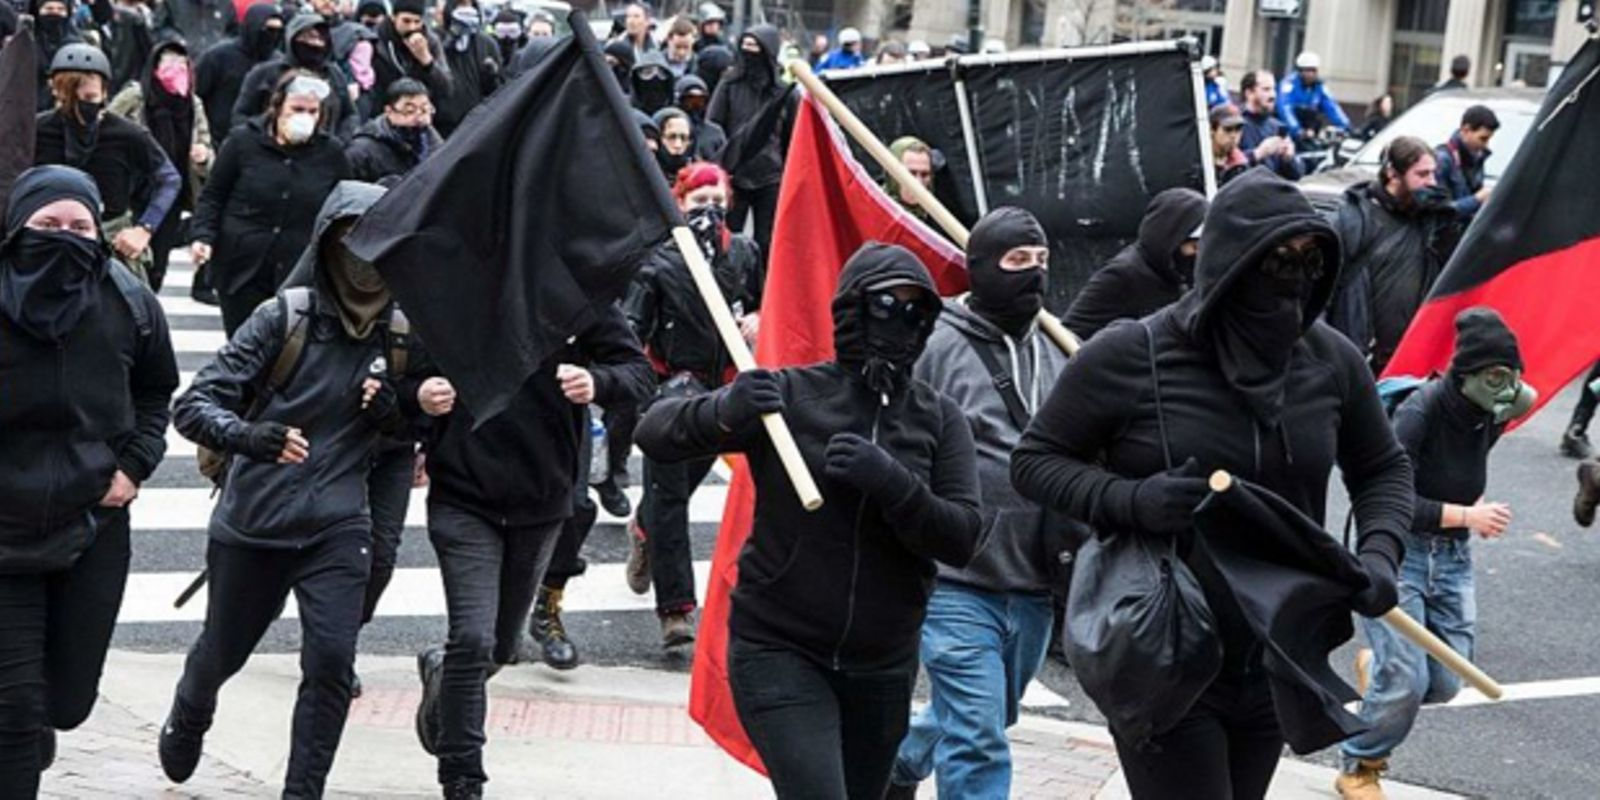 Antifa's granny-bullying is another hit to the group's crumbling public facade